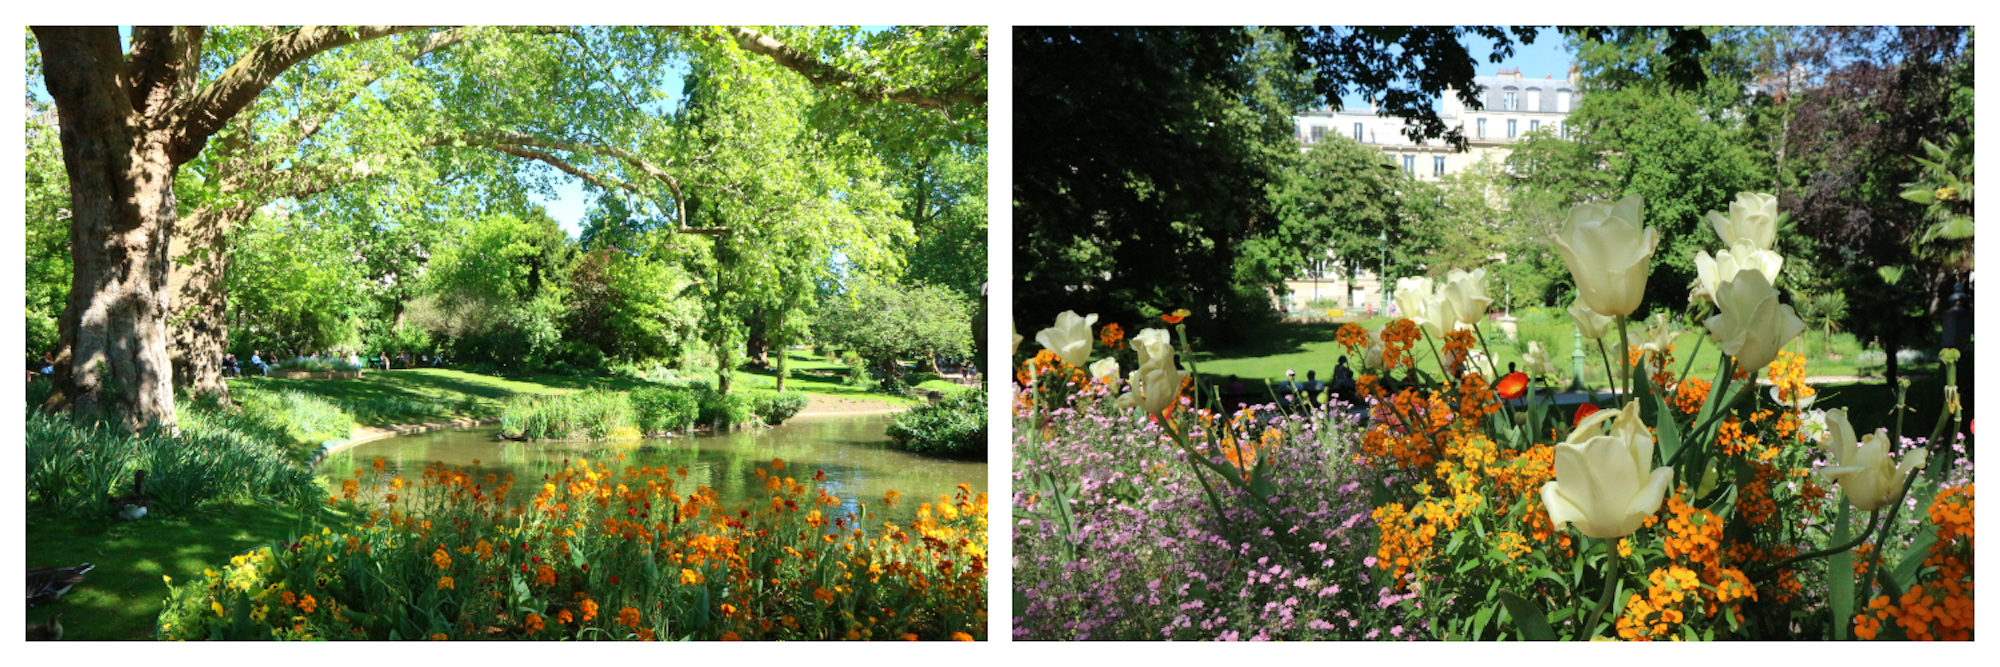 The idyllic Square des Batignolles park in Paris' 17th arrondissement with its pond and colorful flowers is the perfect summer spot in the city.